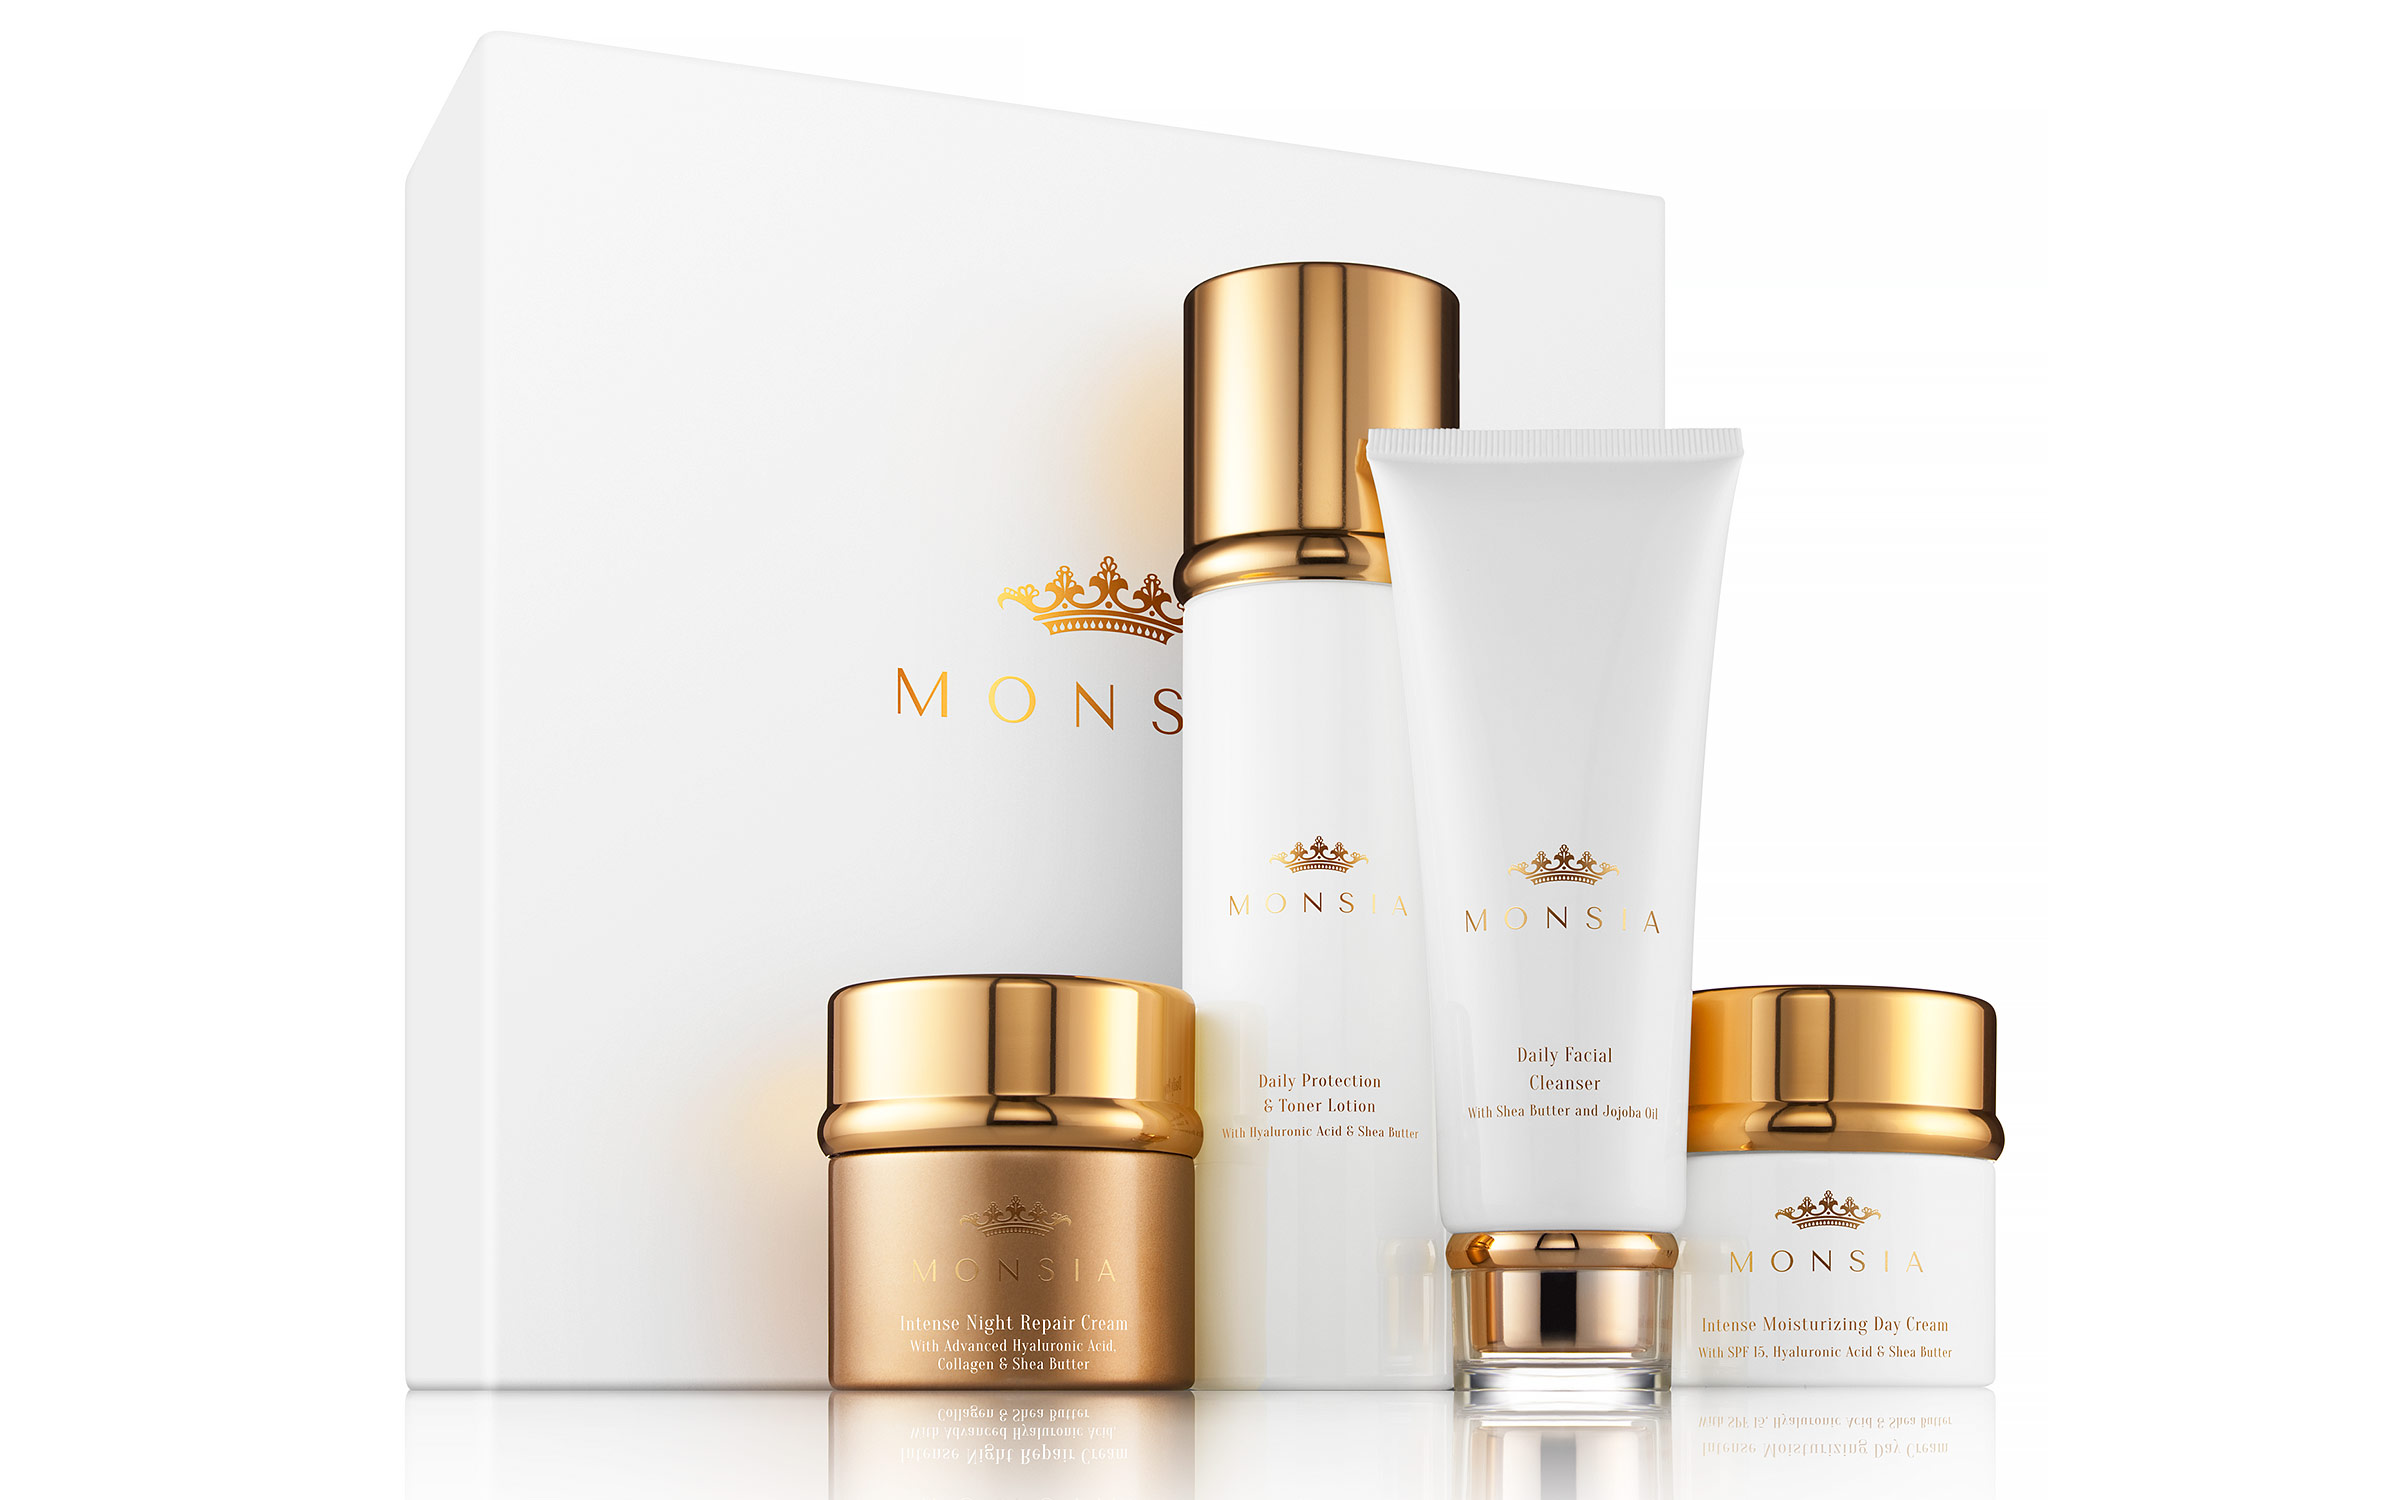 Cosmetics and skin care product photography for luxury skin care brand Monsia, shot by Zachary Goulko at his product photography studio located in the New York City area.